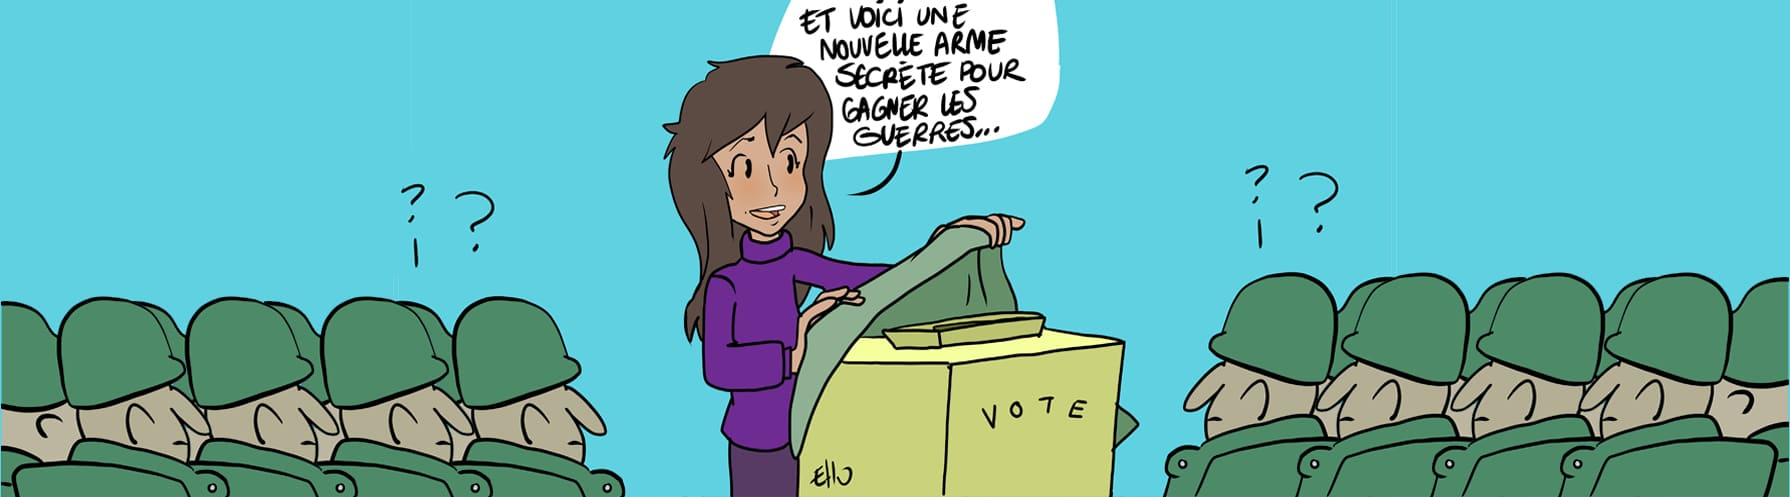 election guerre libye